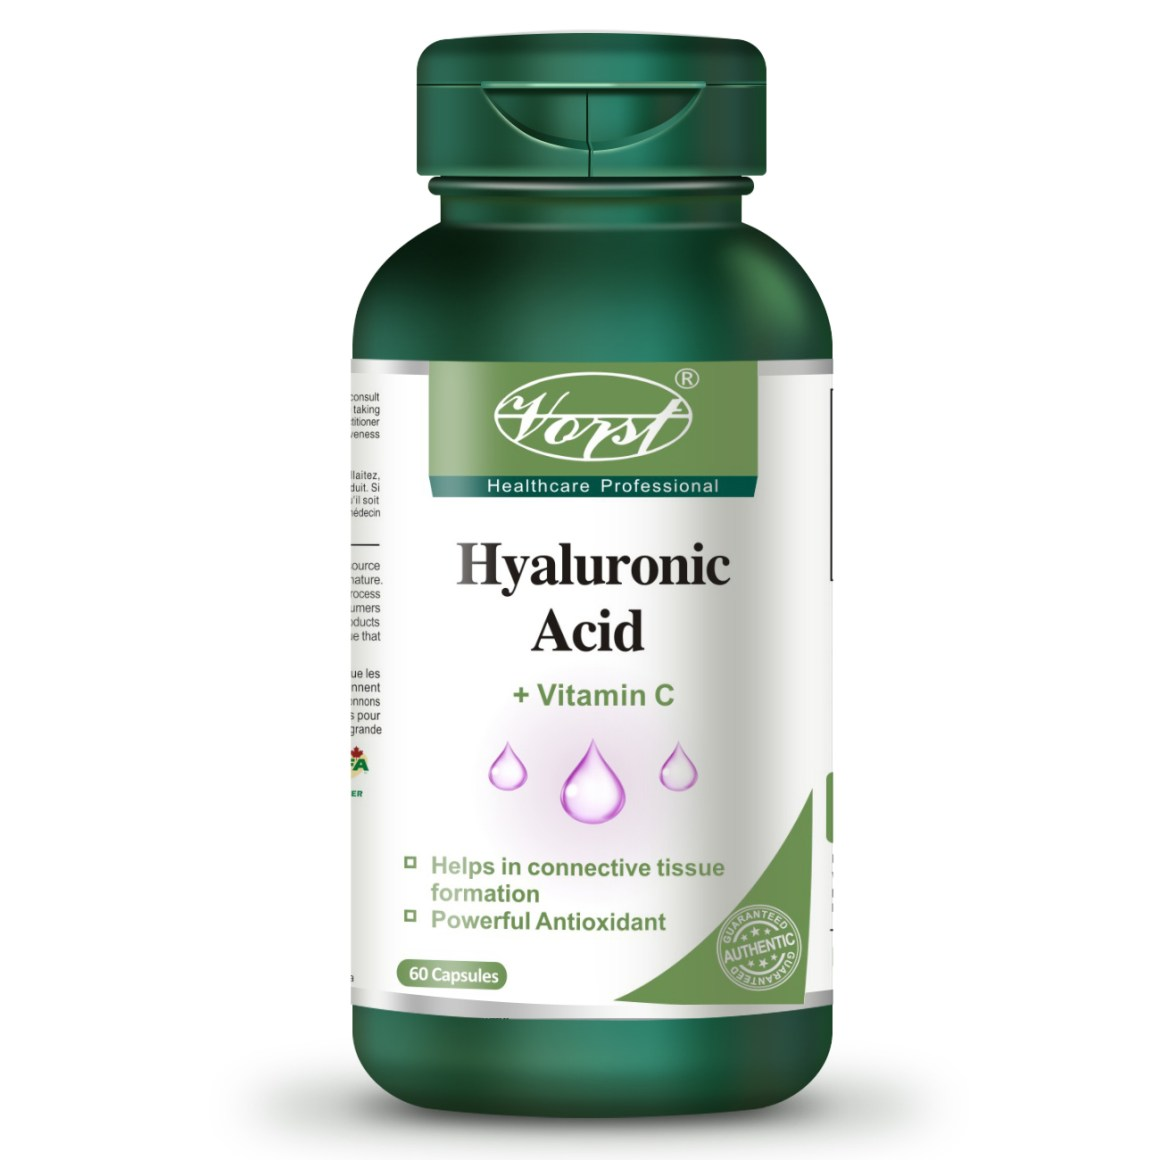 Hyaluronic Acid Bottle